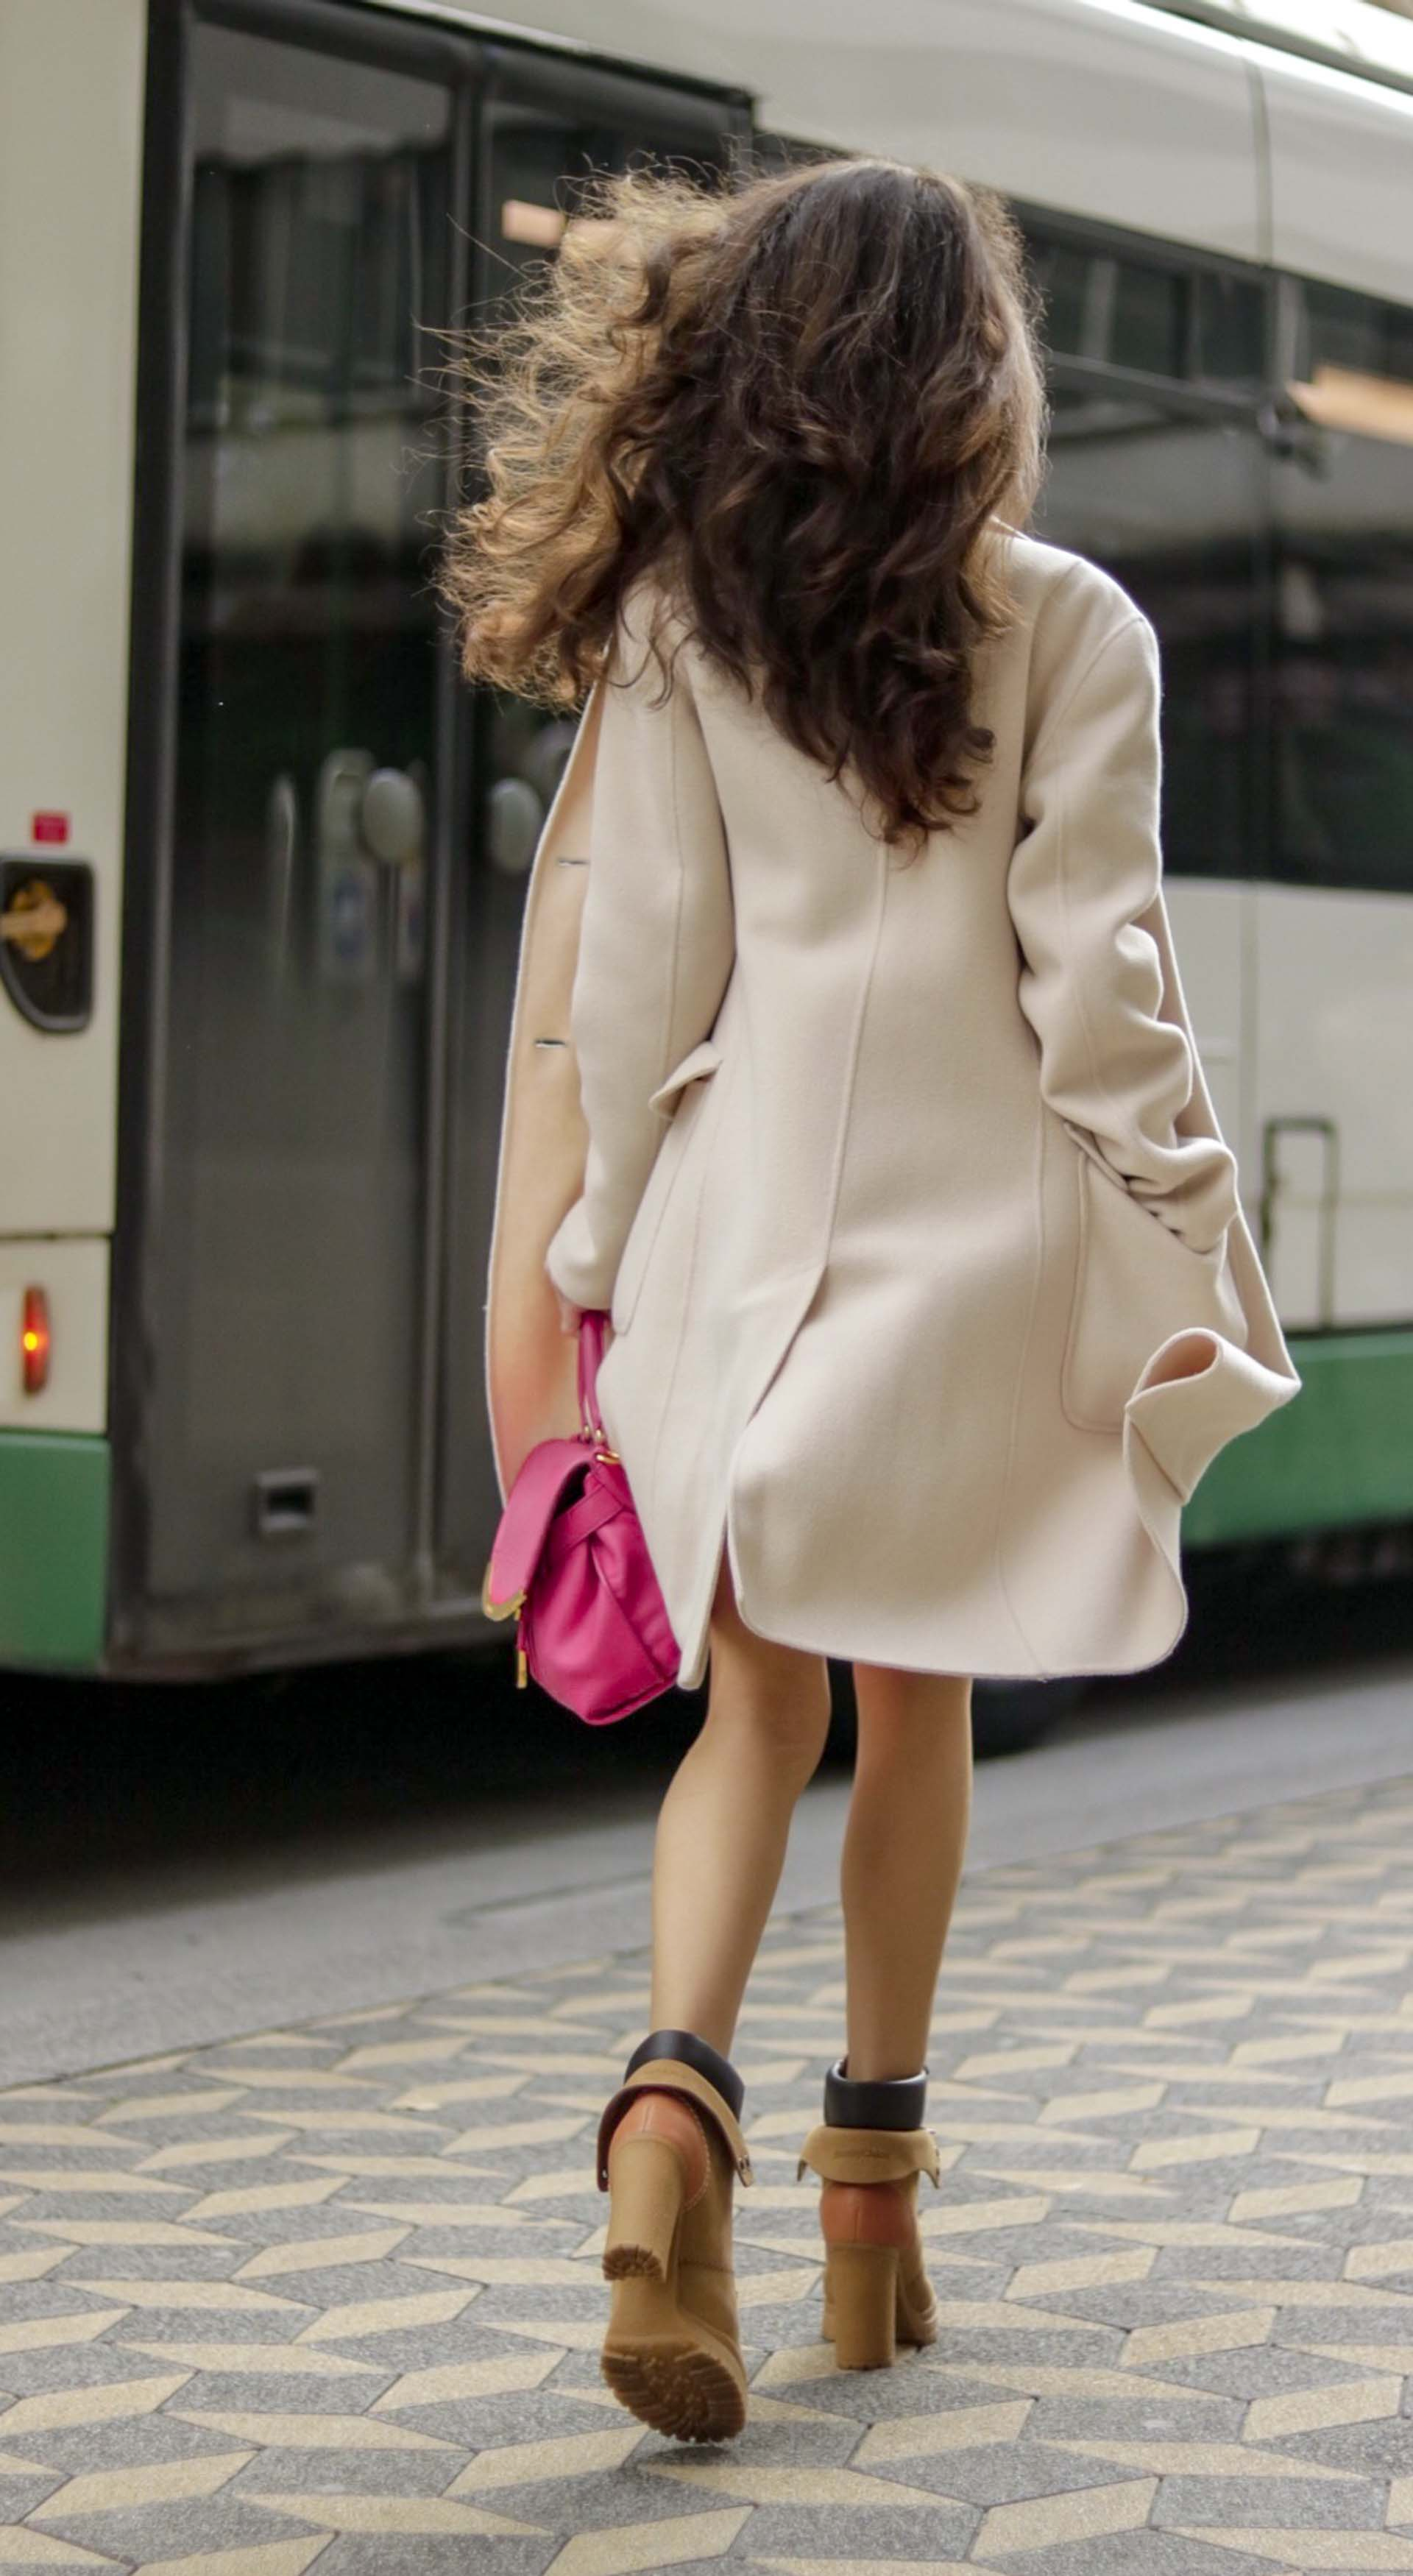 aff9ddb6c28 Most read Slovenian Fashion Blogger Veronika Lipar of Brunette from Wall  Street wearing See By Chloé